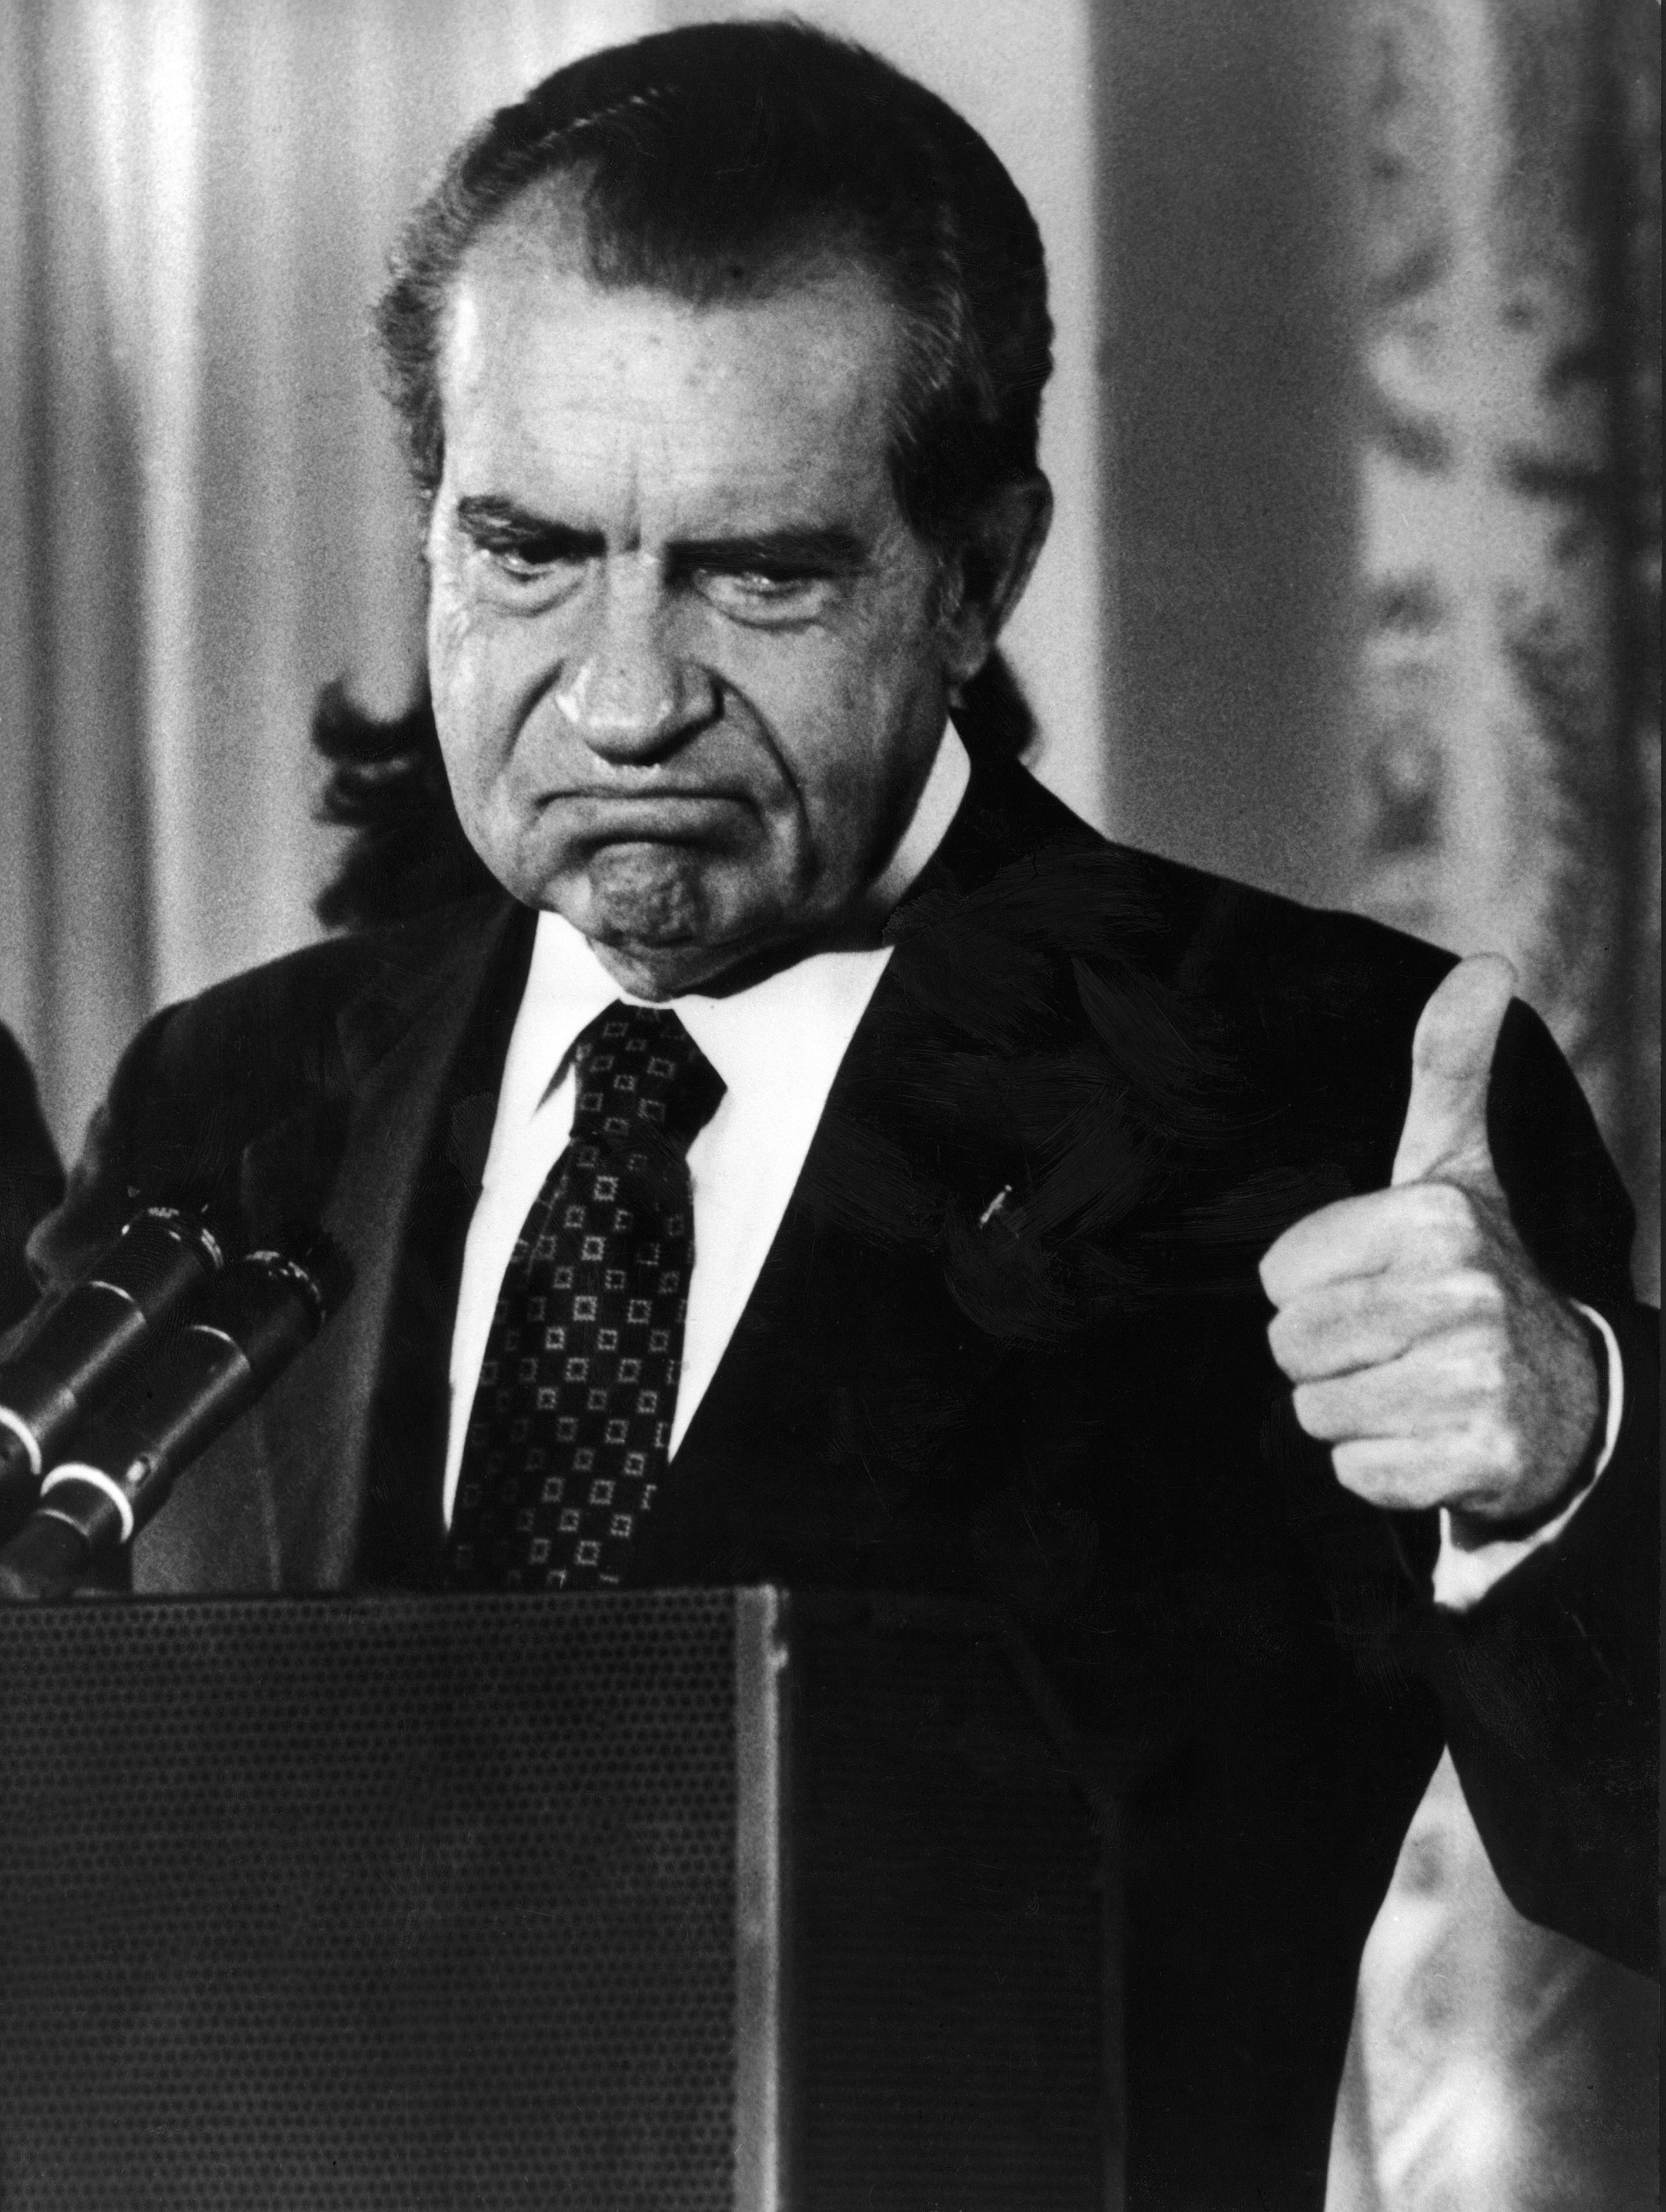 http://marijuanapolitics.com/wp-content/uploads/2016/03/nixon-thumbs-up.jpg